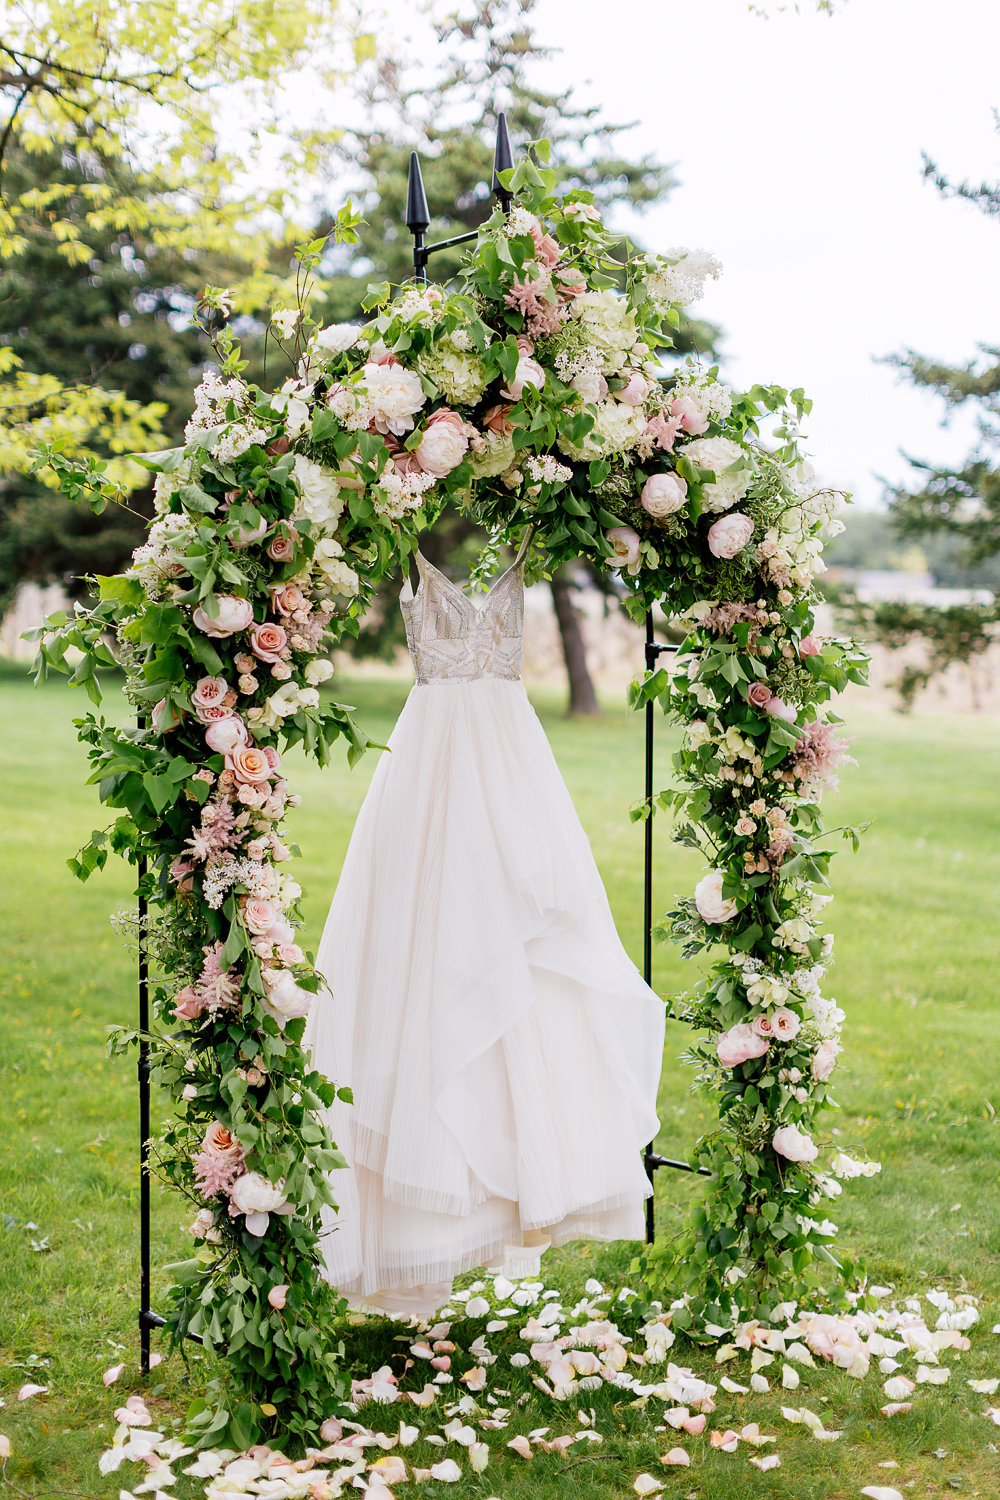 wedding dresses - photo by Purple Tree Photography http://ruffledblog.com/charming-wine-country-wedding-at-kurtz-orchard